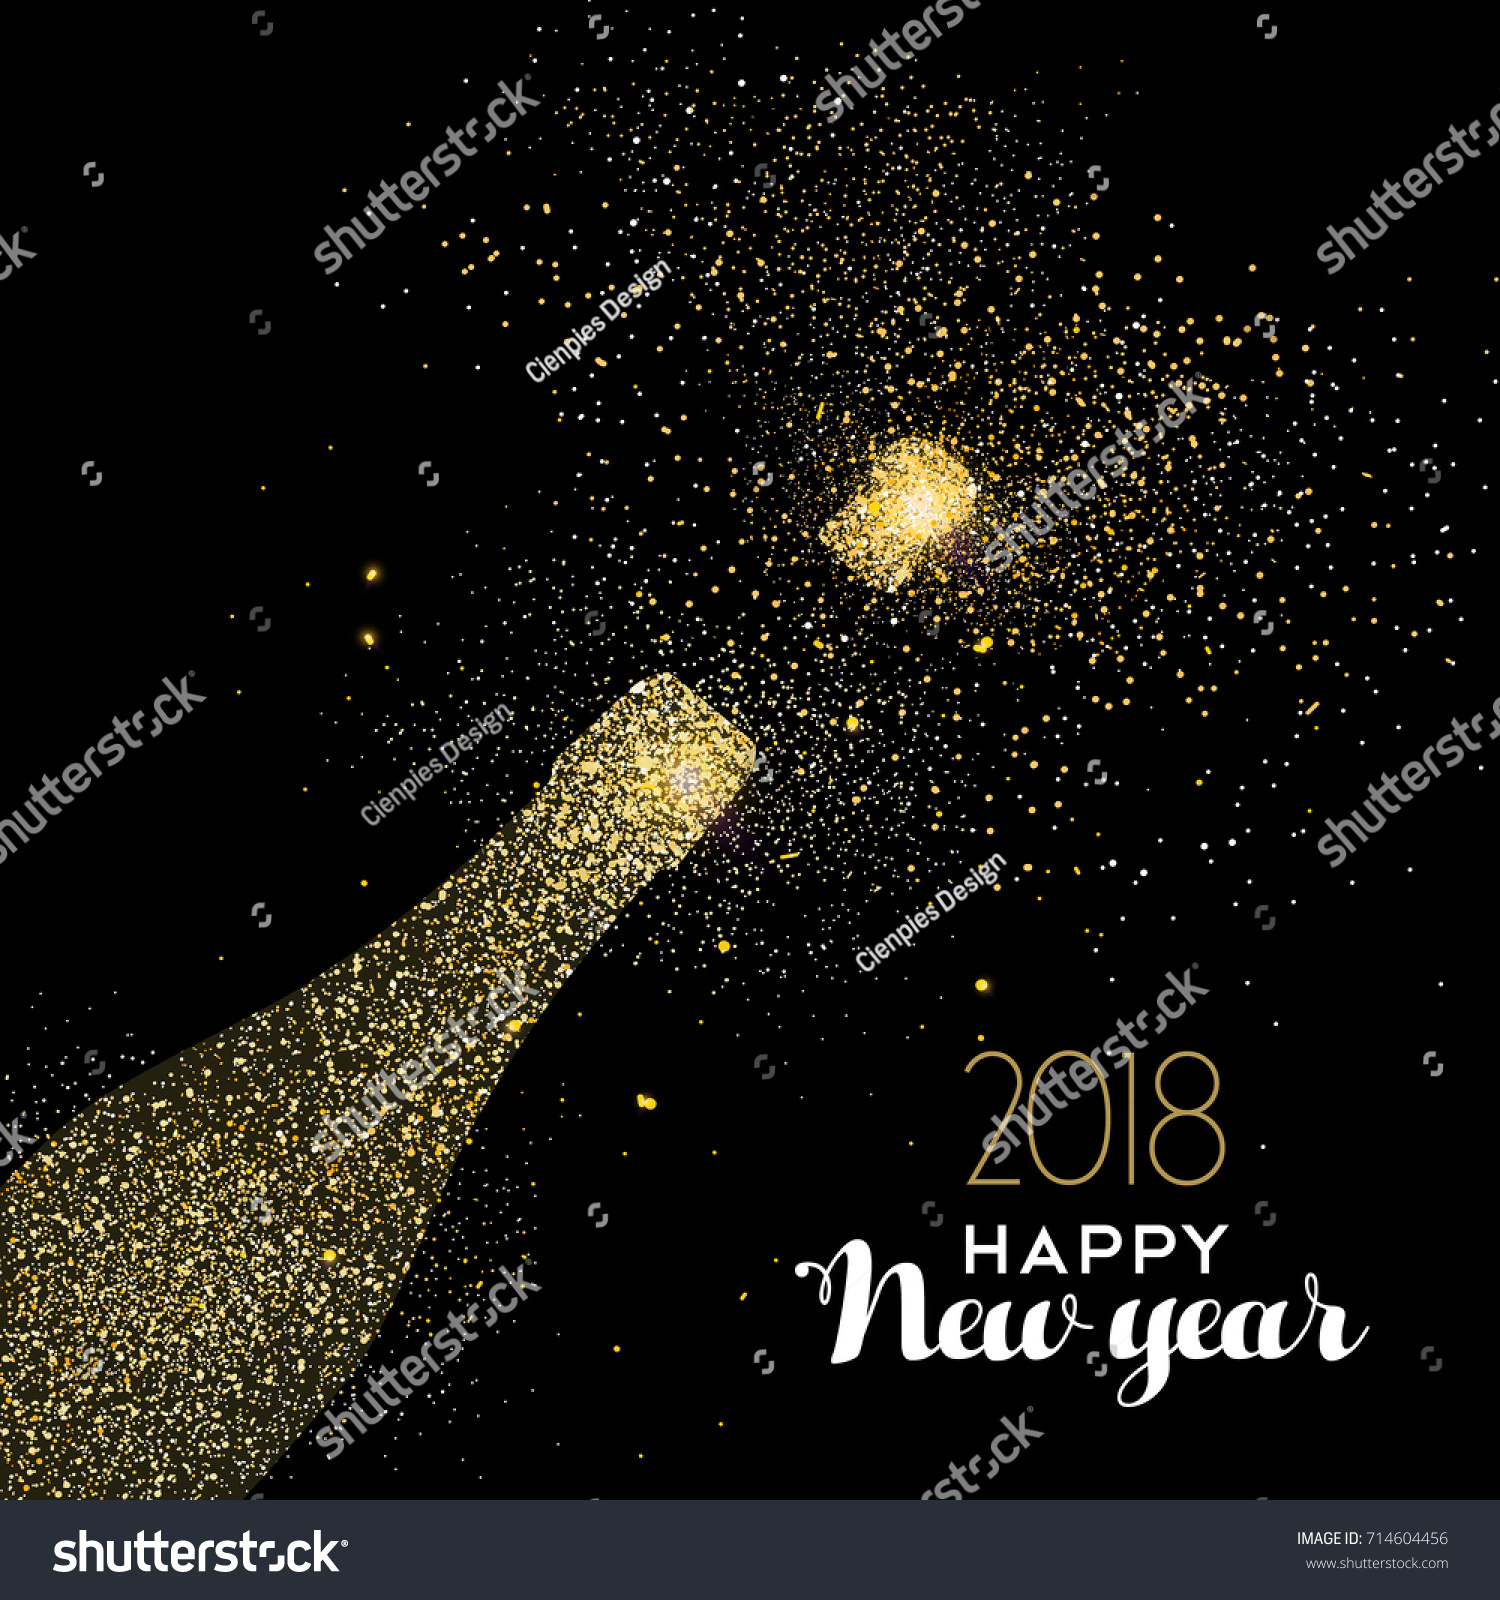 happy new year 2018 gold champagne bottle celebration made of realistic golden glitter dust ideal